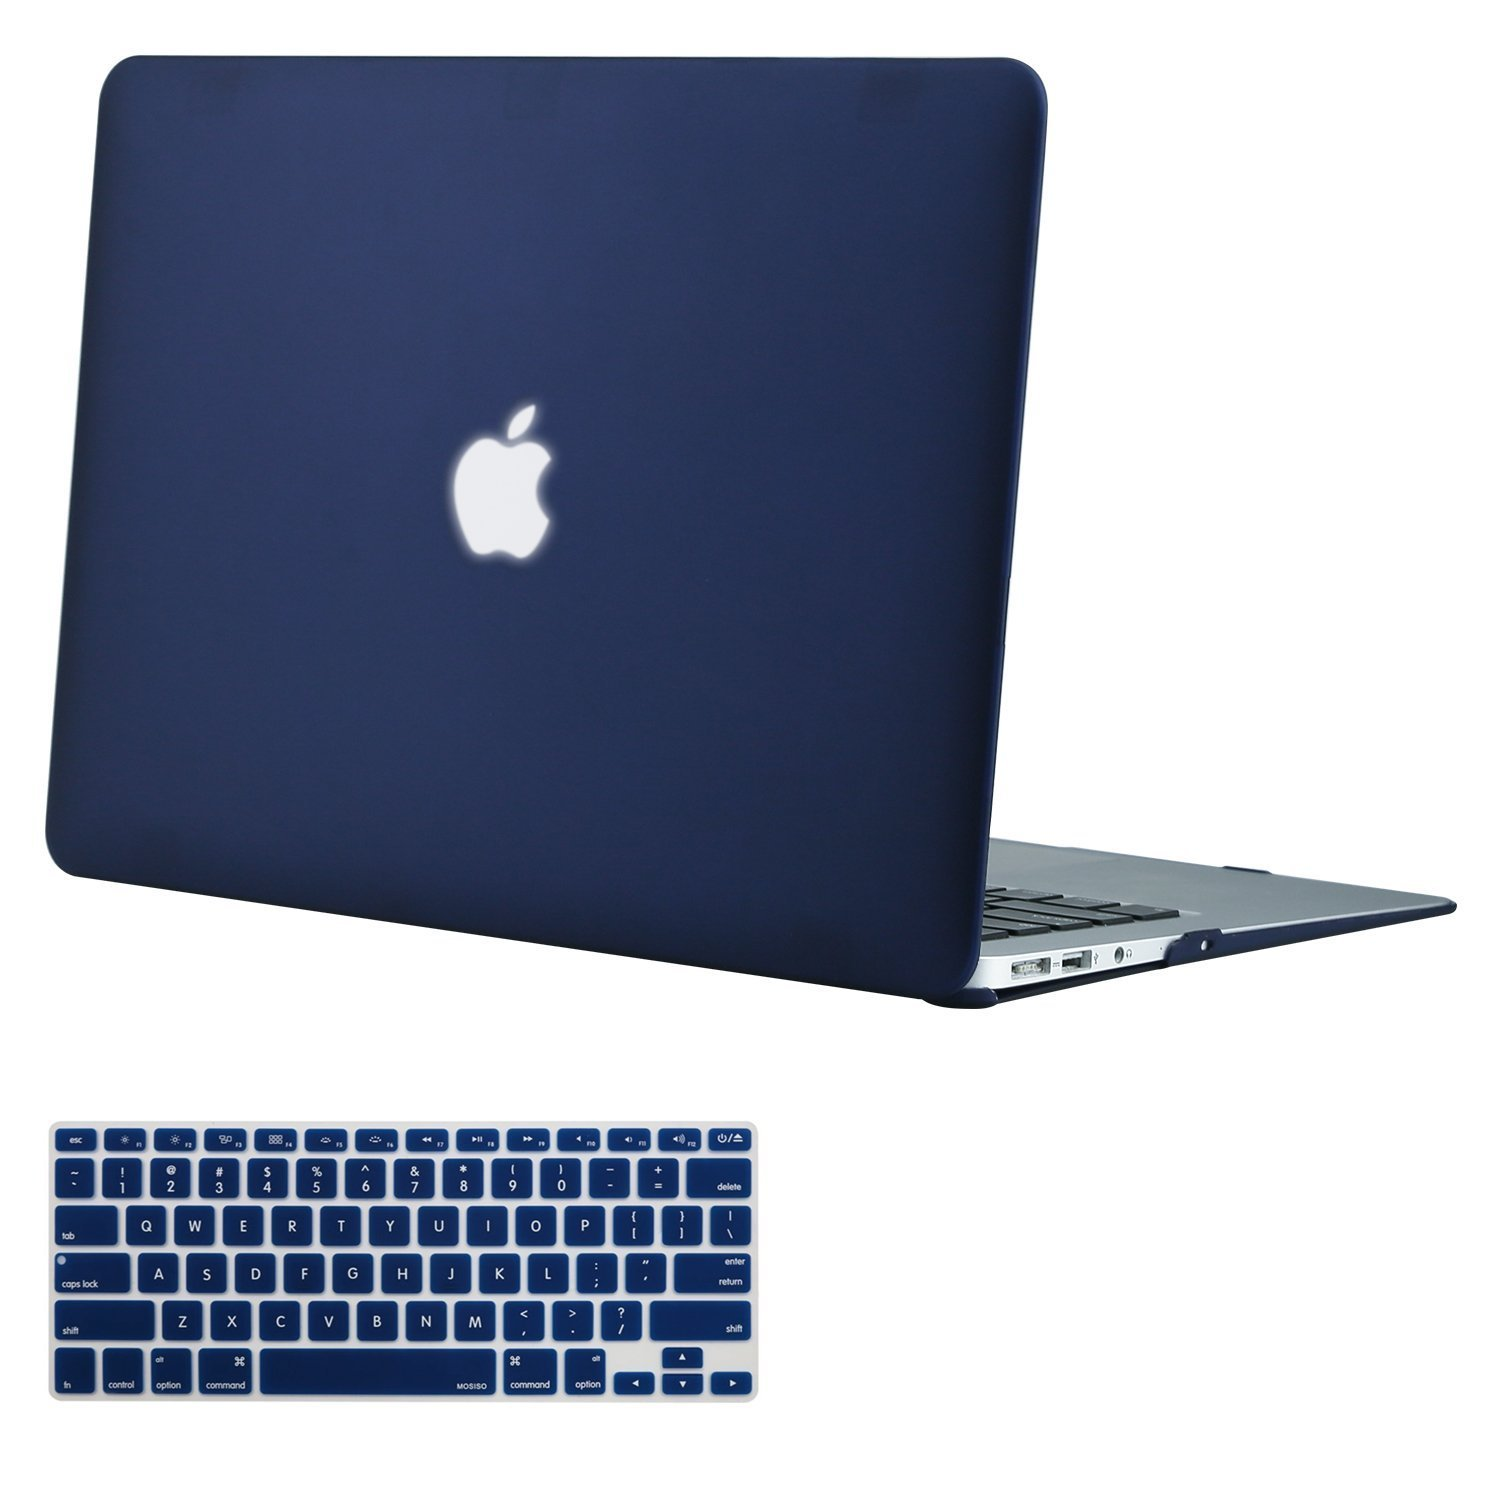 MOSISO Plastic Hard Shell Case & Keyboard Cover Skin Only Compatible with MacBook Air 11 Inch (Models: A1370 & A1465), Navy Blue by MOSISO